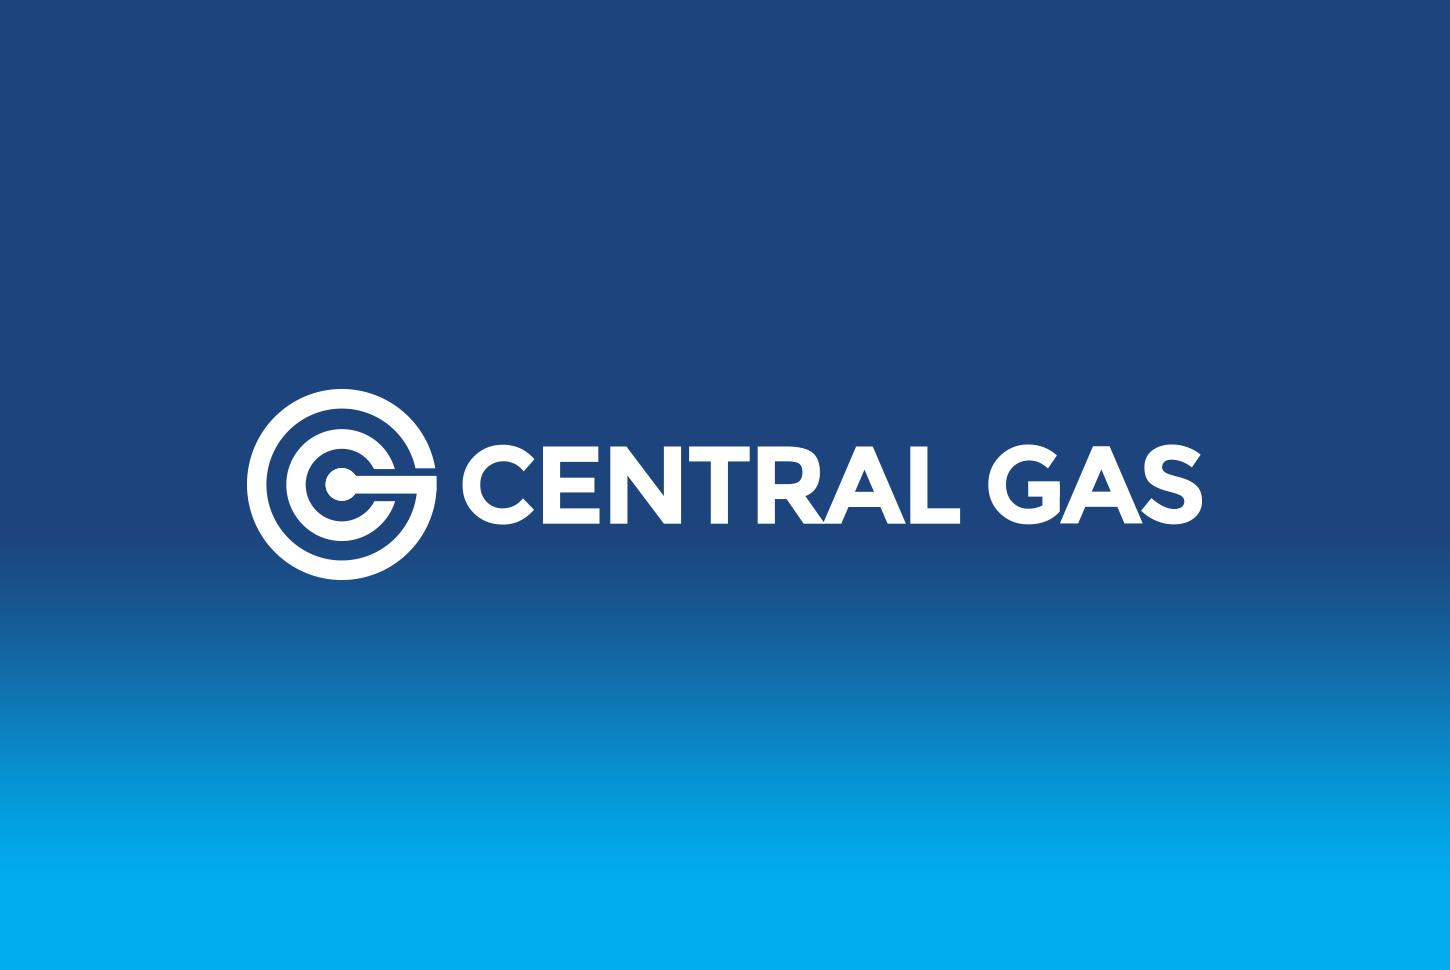 [www.matiascazorla.com]_7df8_central-gas-03